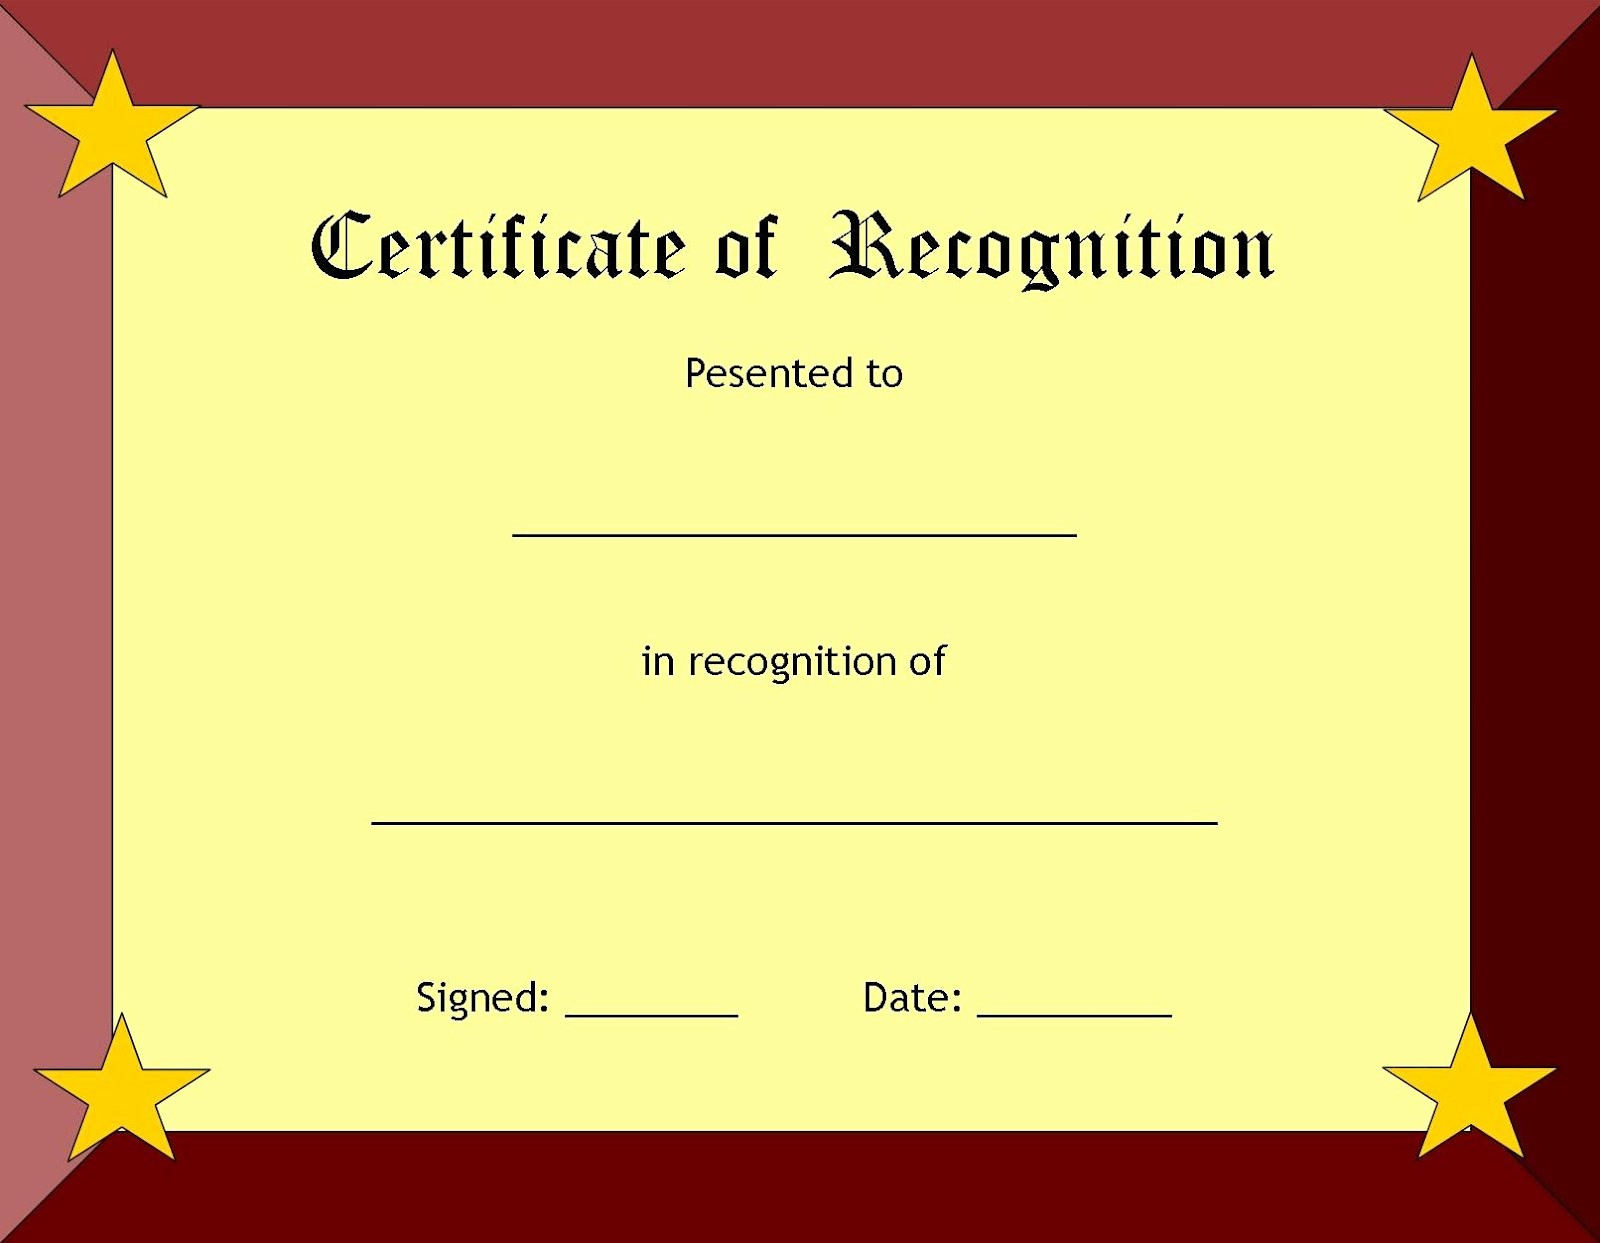 Free Printable Blank Certificate Borders Lovely Certificate Templates without Borders